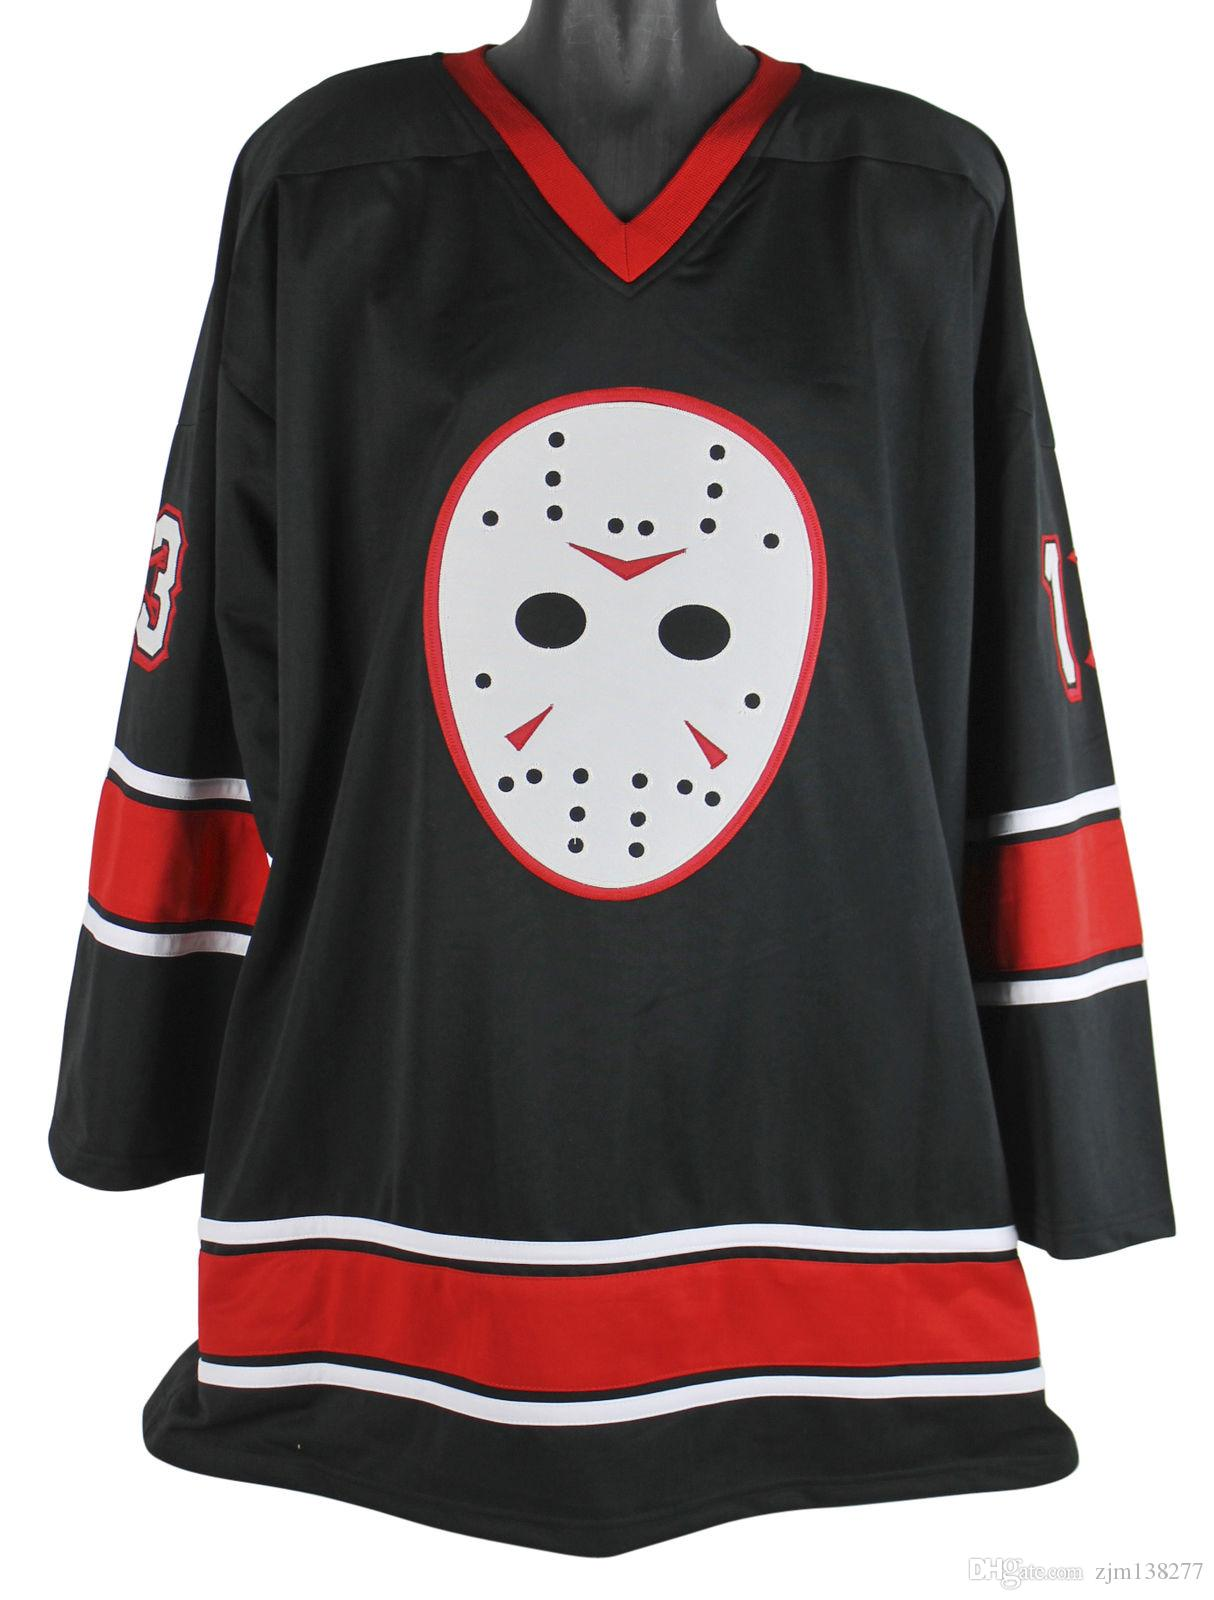 07d7cba7c46 2019 Friday The 13th Jason Voorhees Hockey Jersey Embroidery Stitched  Customize Any Number And Name Jerseys. From Zjm138277